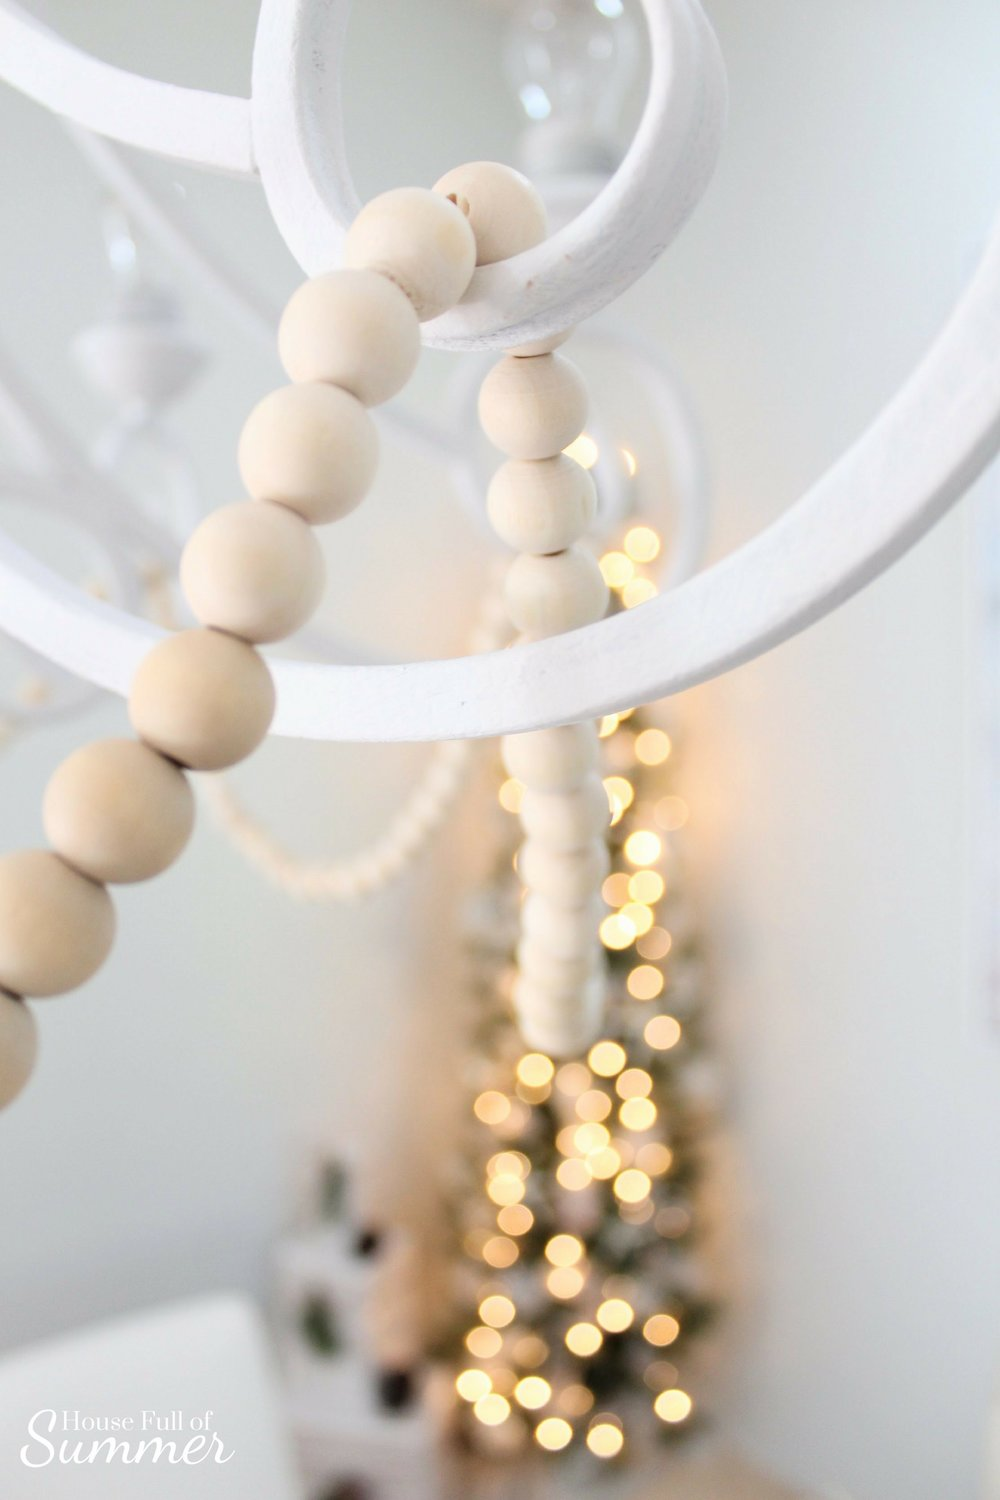 Christmas Home Tour | House Full of Summer blog hop - Cheerful Christmas Home Tourcoastal christmas neutral christmas decor, holiday home tour, florida christmas, dining room, chandelier, painted, wooden beaded chandelier